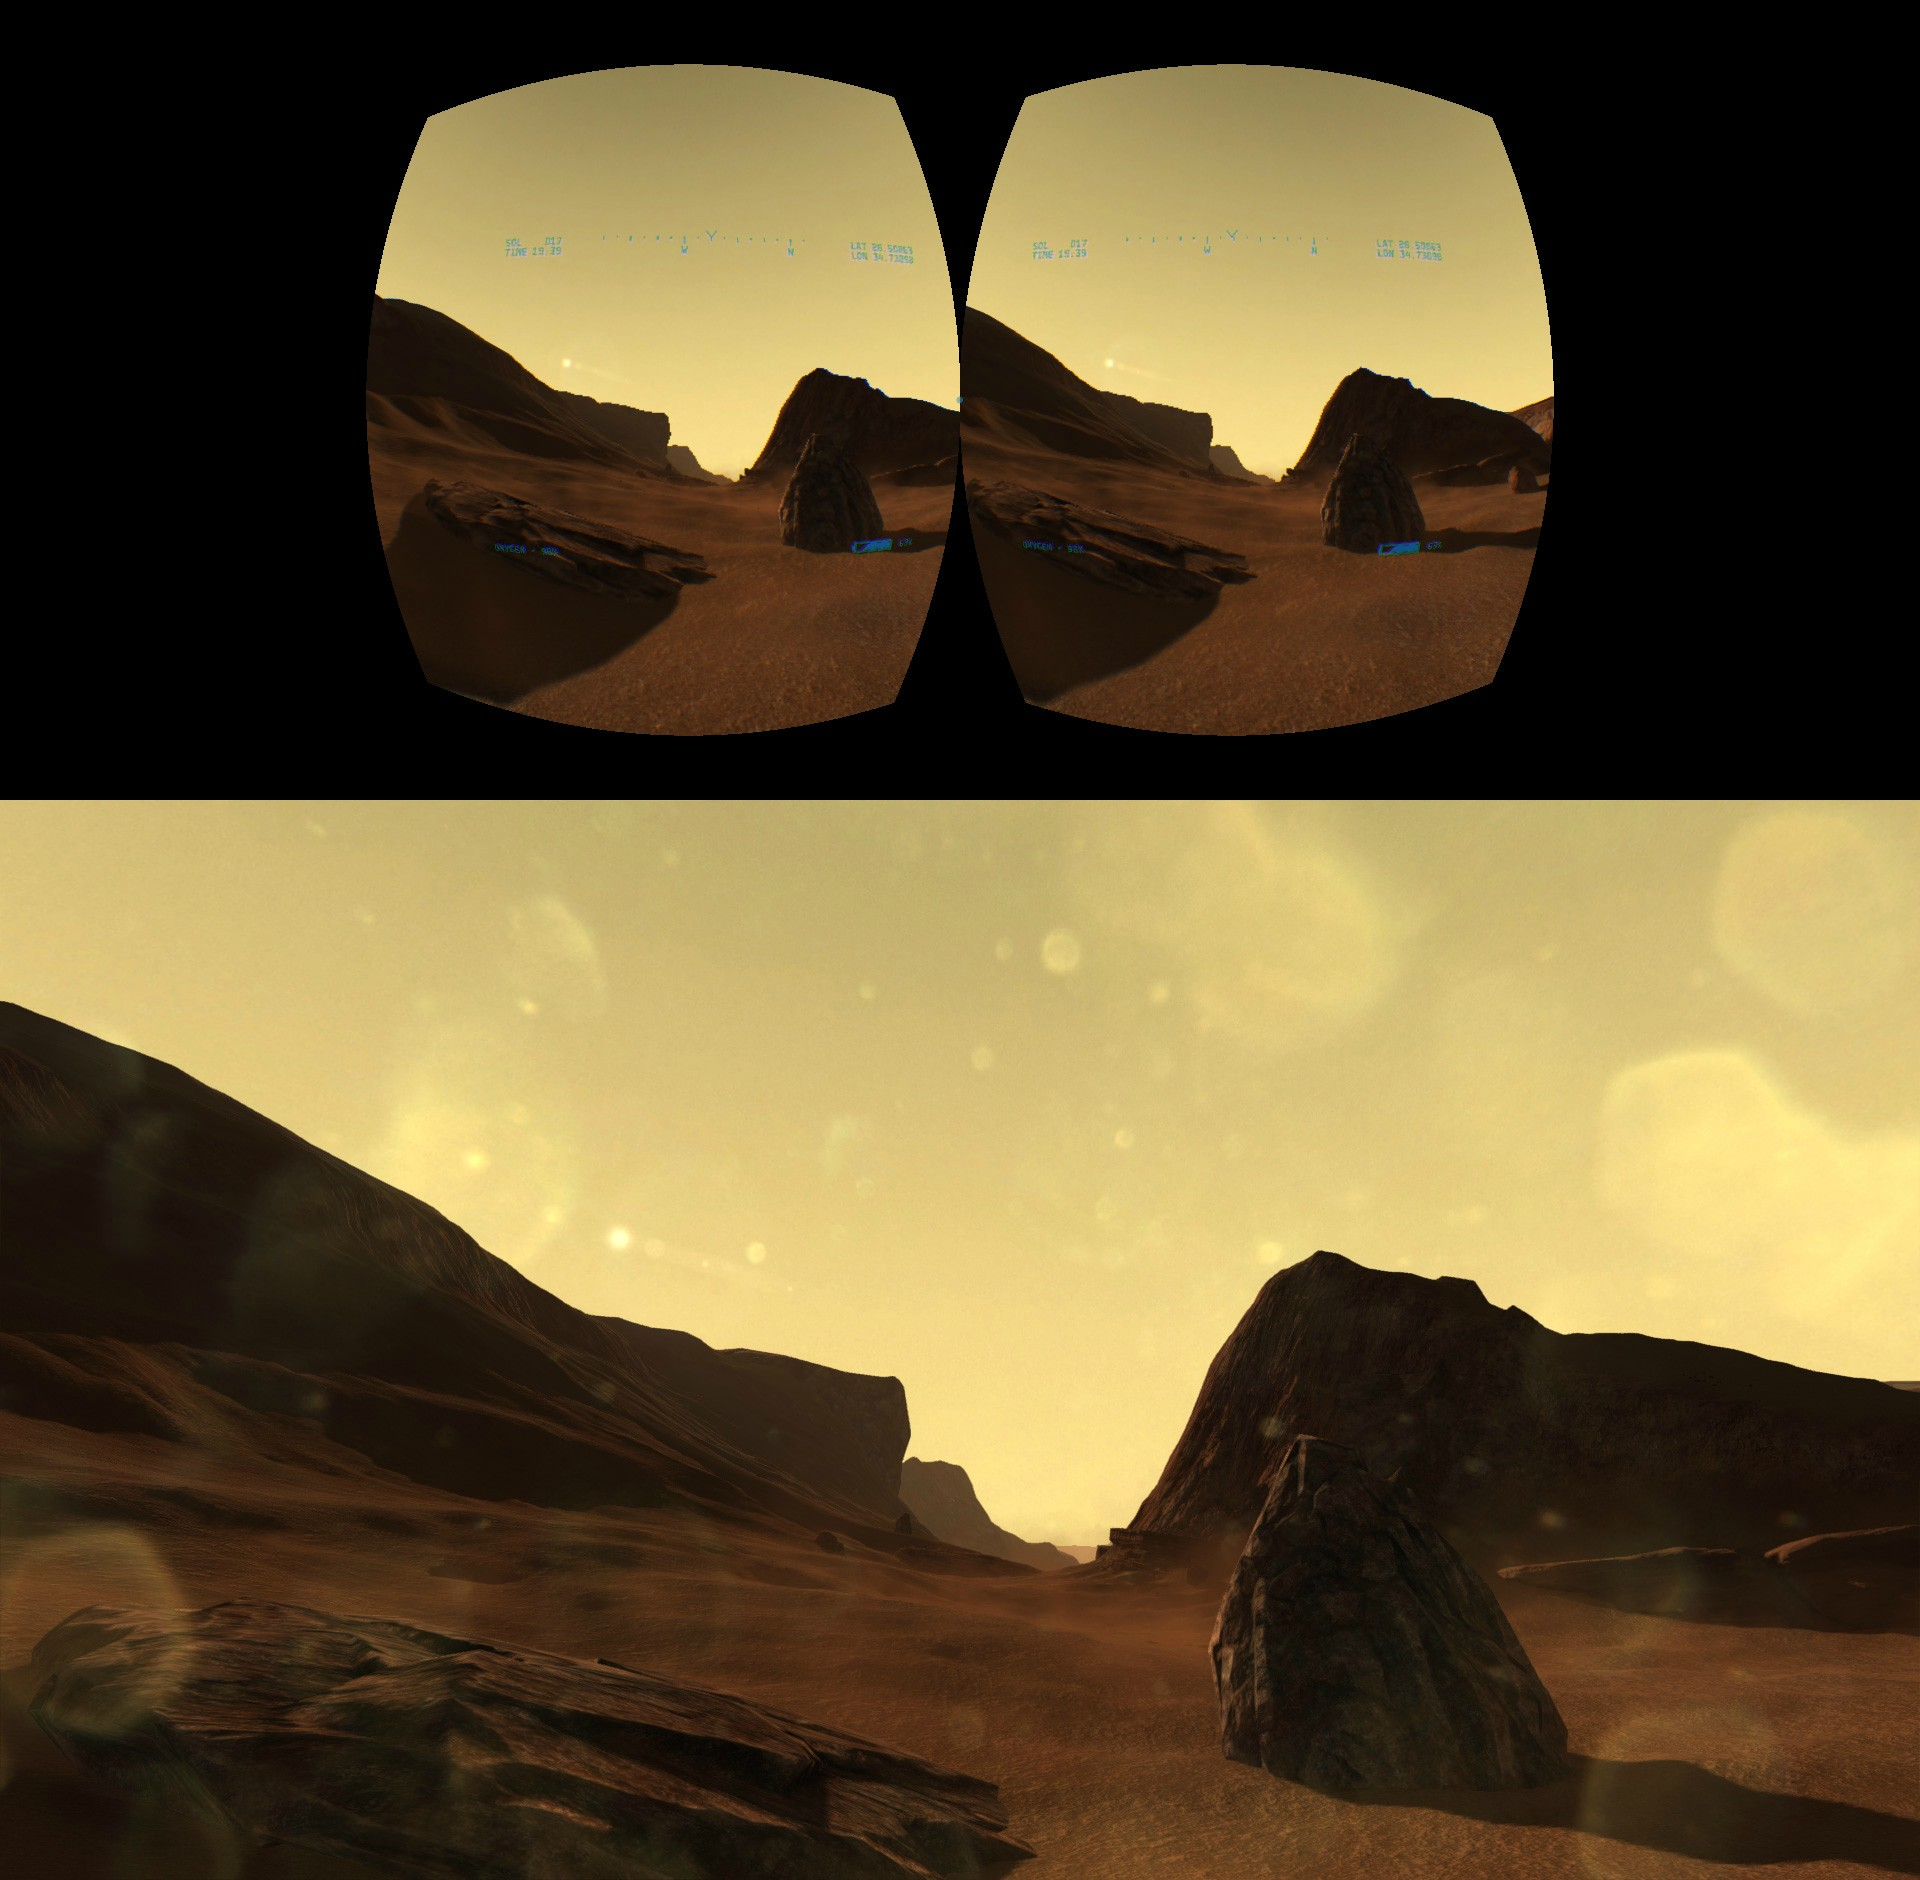 Top image is the view from the Rift cameras. Bottom image is the photo taken from that view. Click to see full resolution.